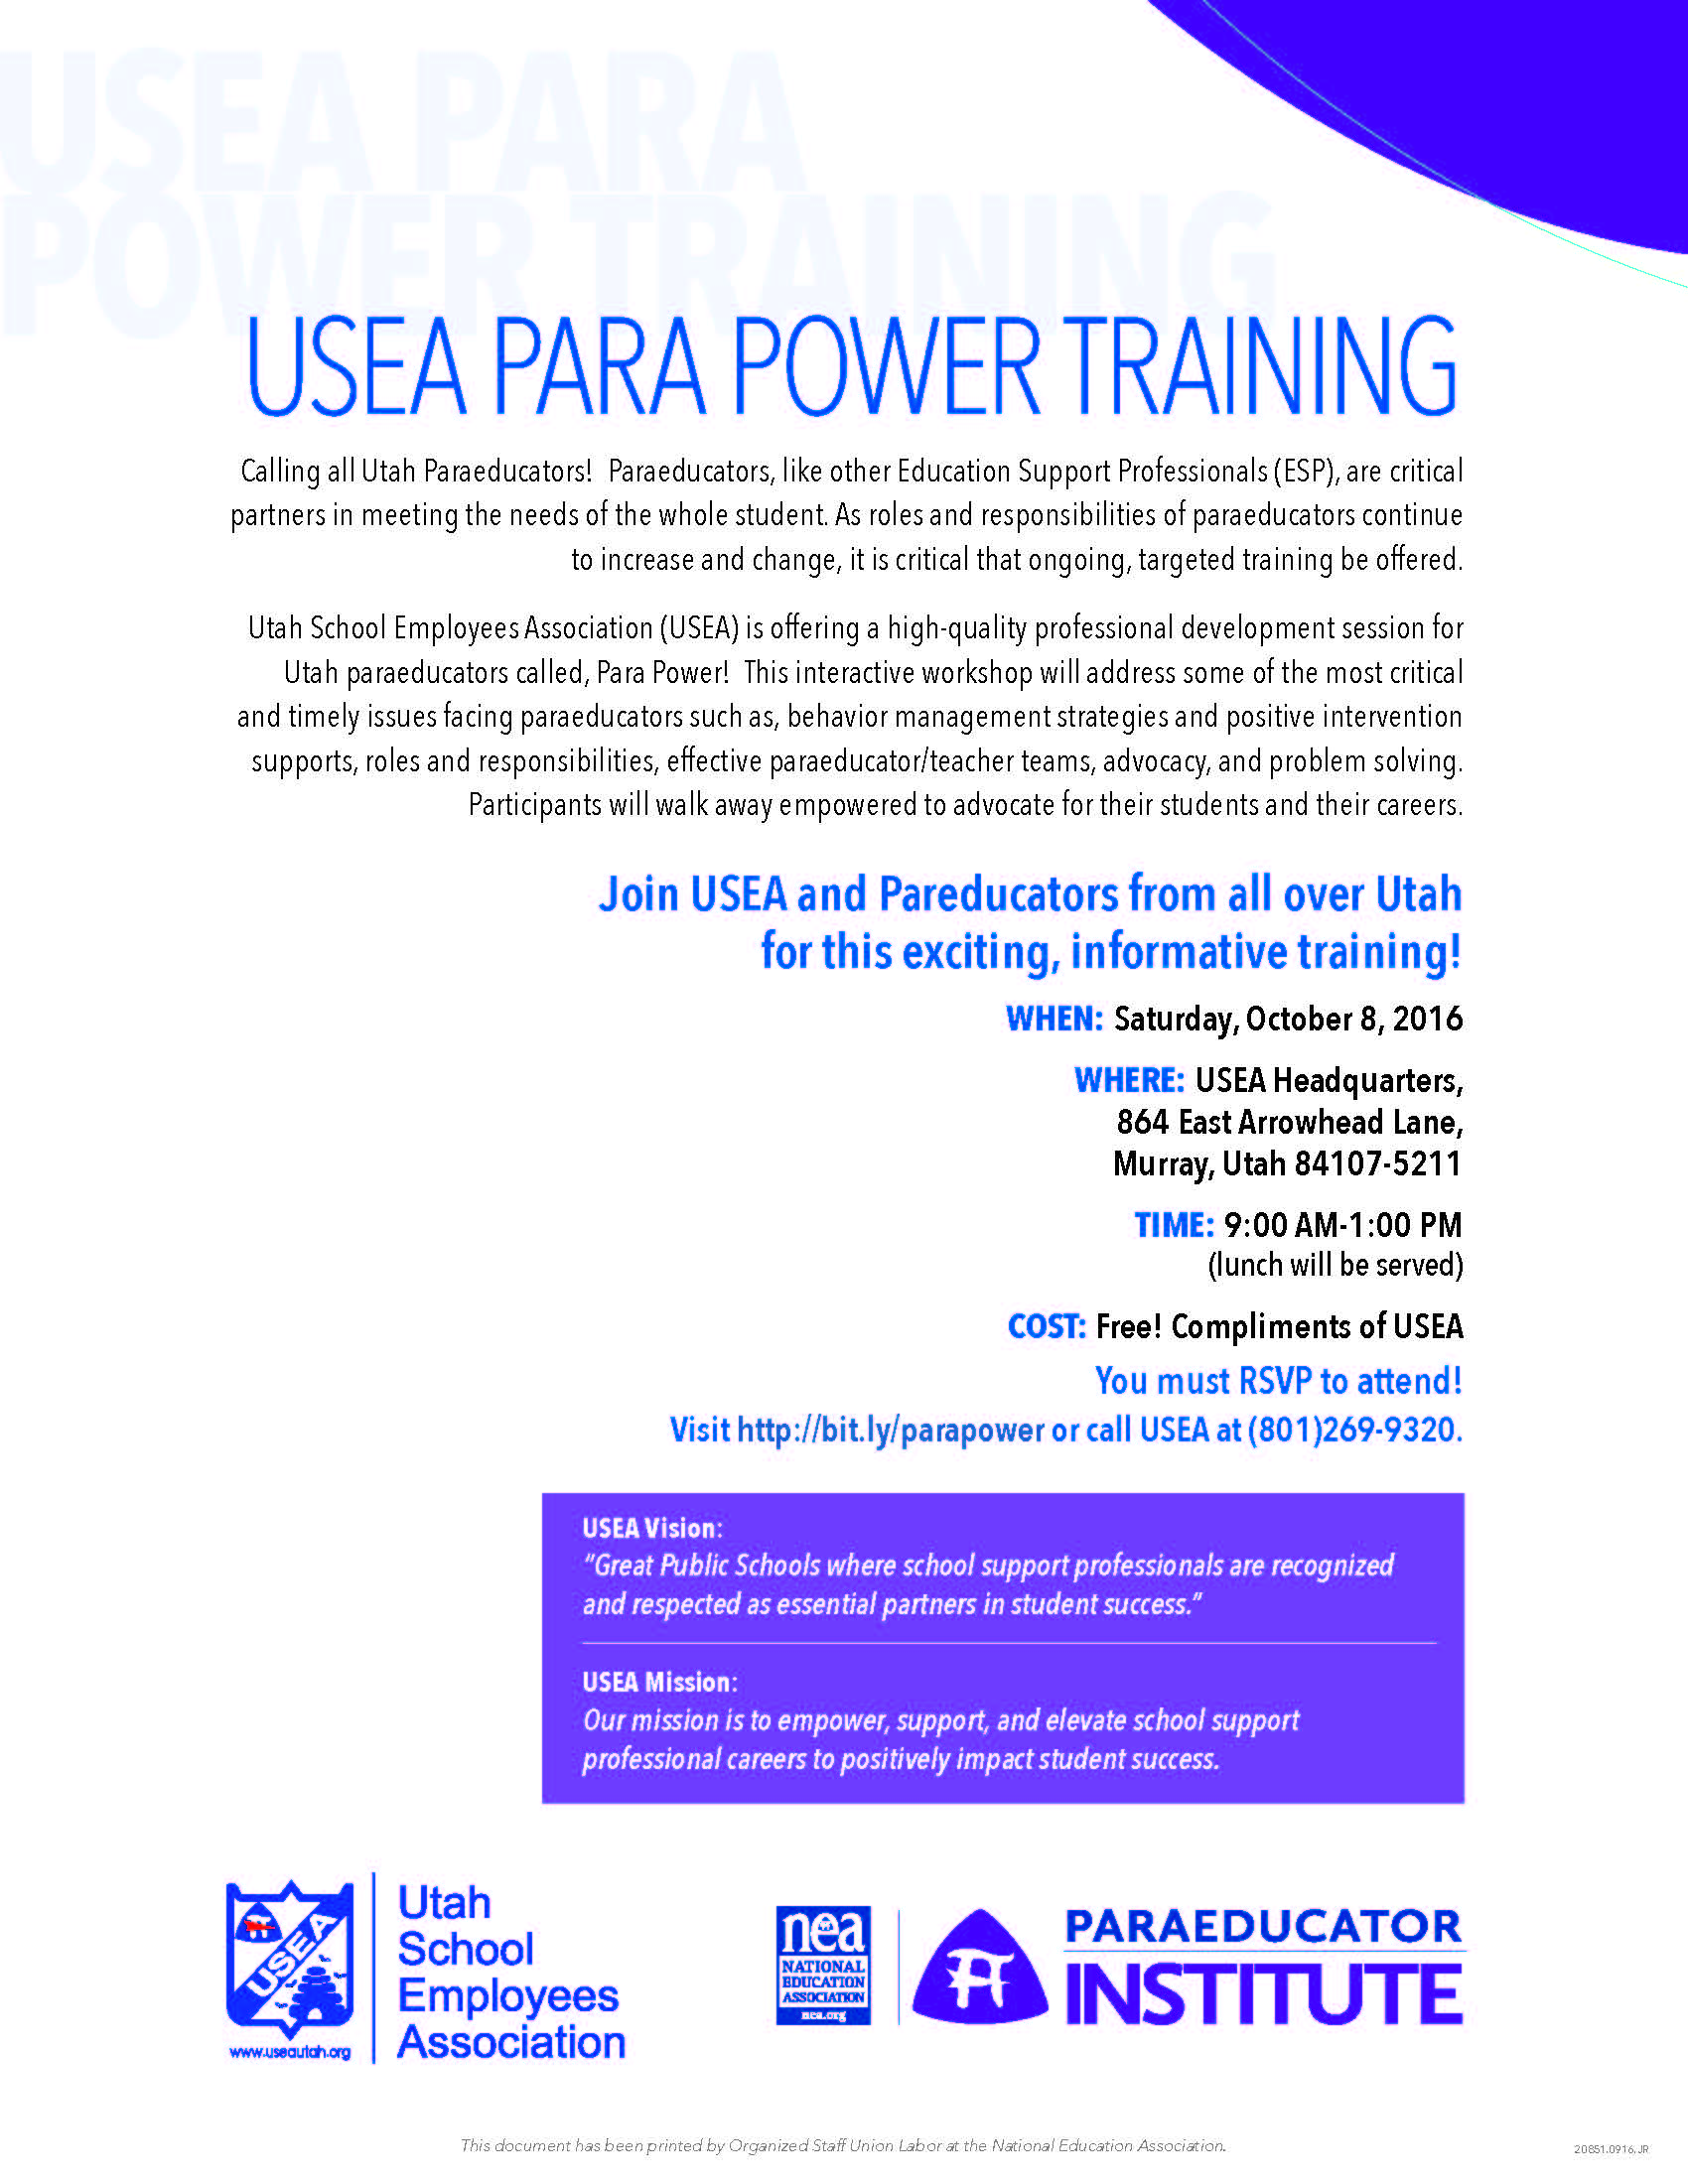 usea-parapower-training-flyer-october-2016